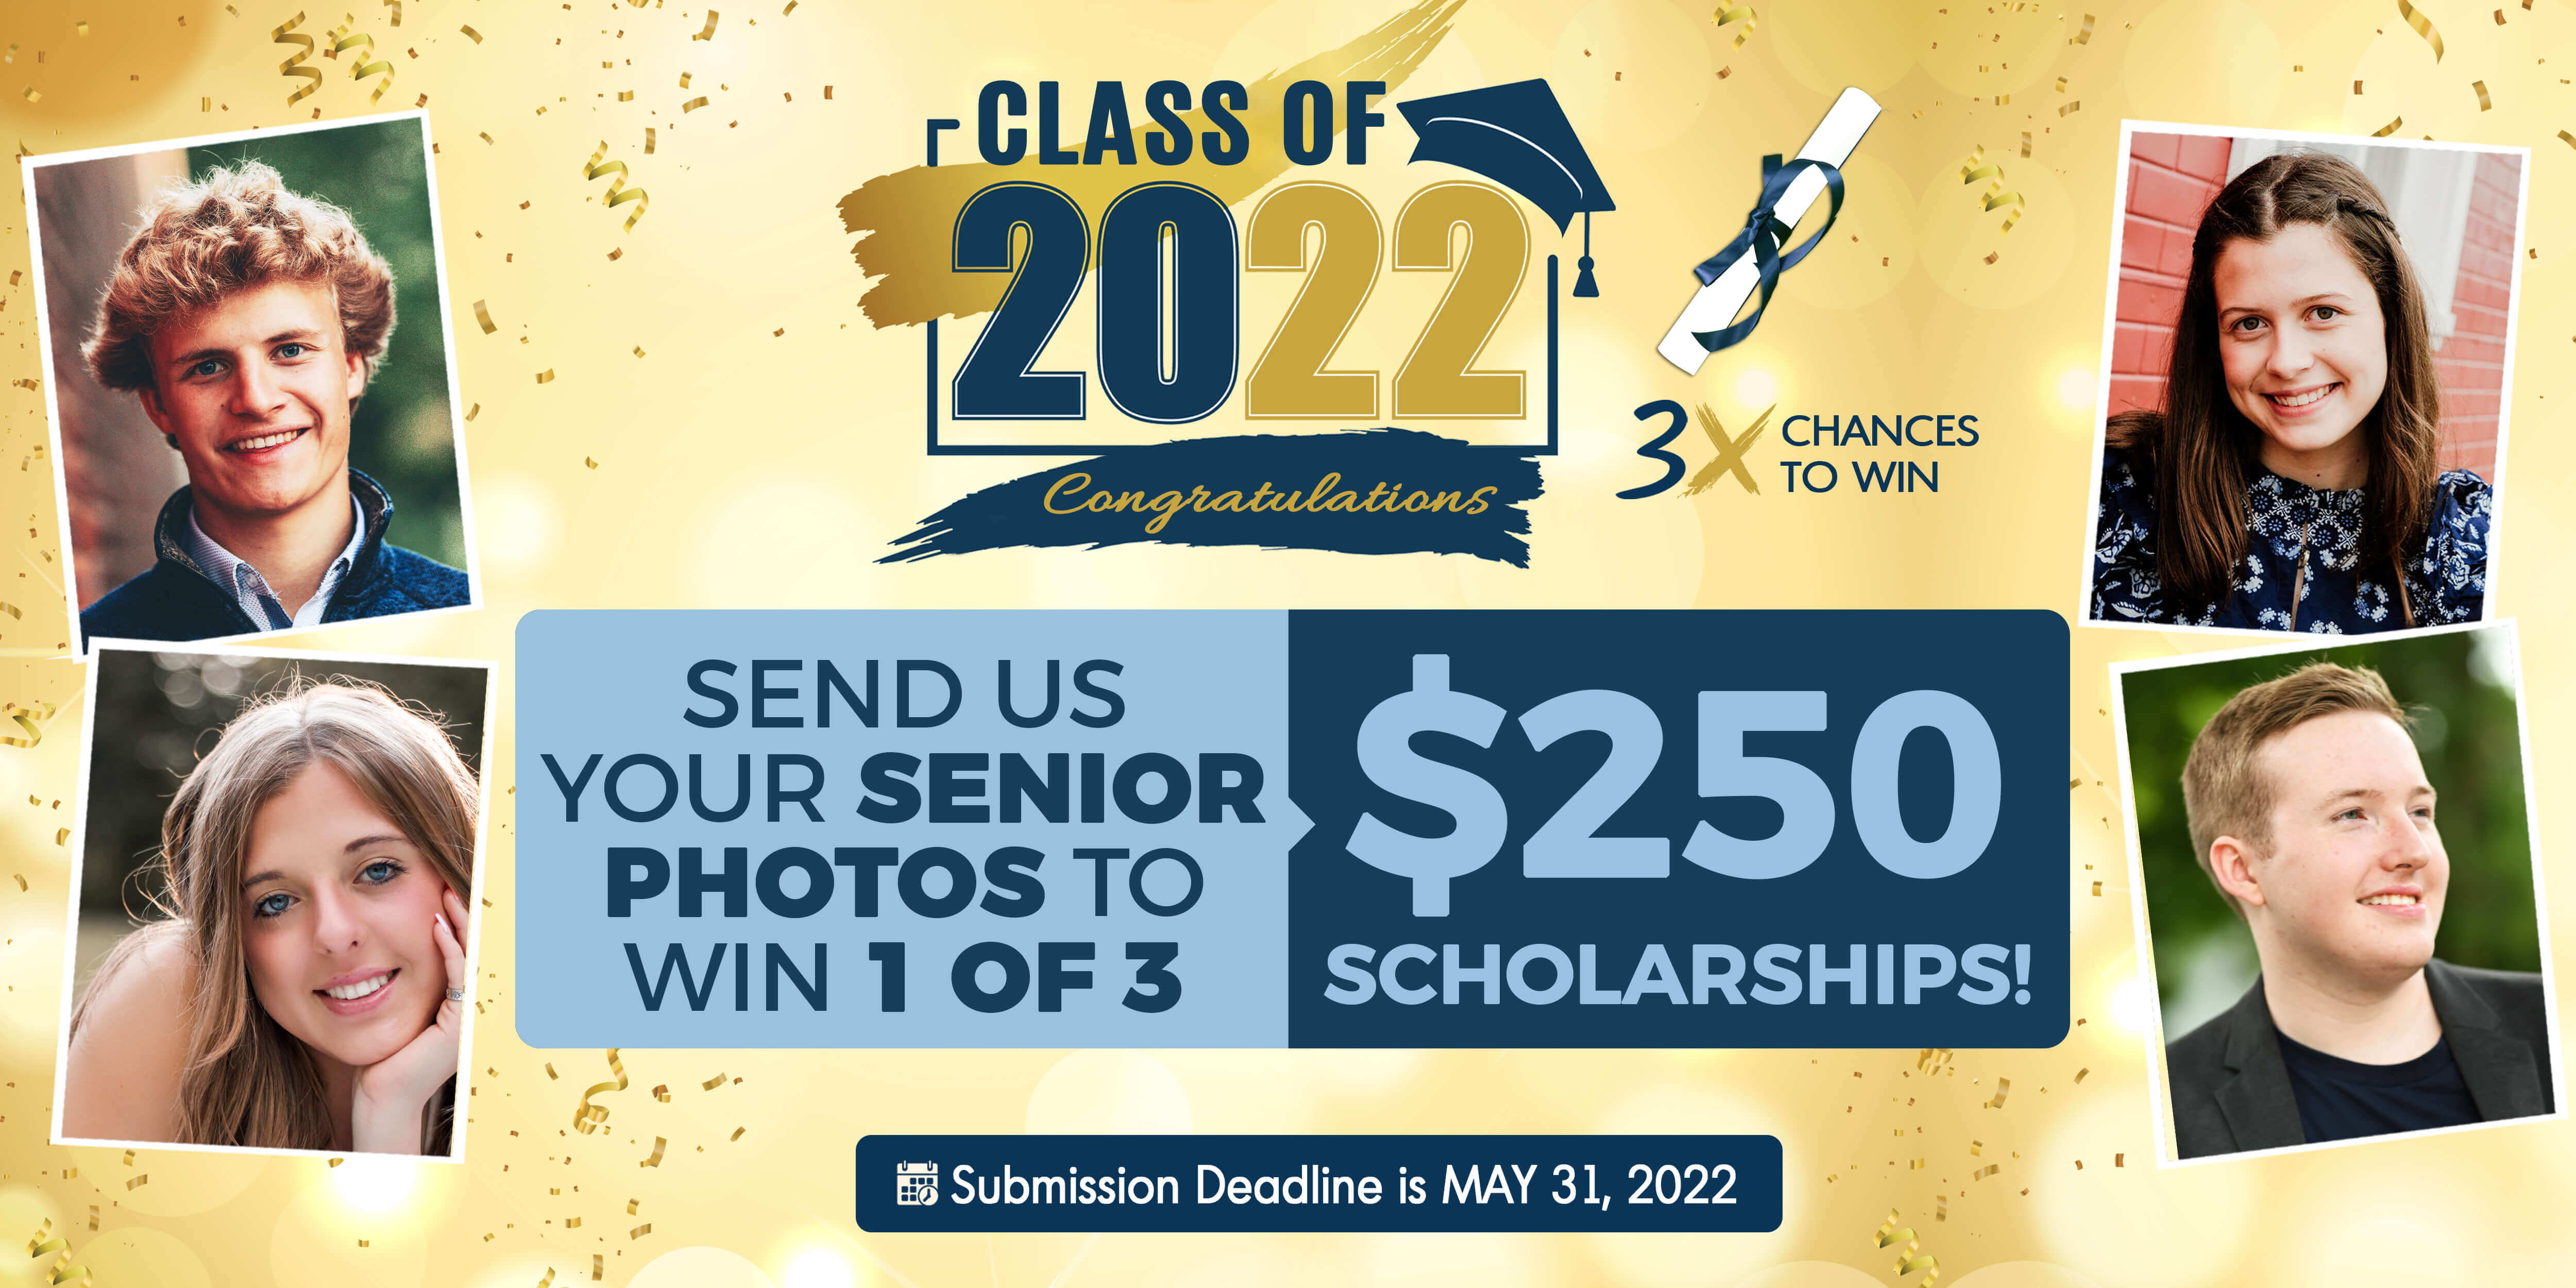 Submit your senior photo for a chance to win $250!